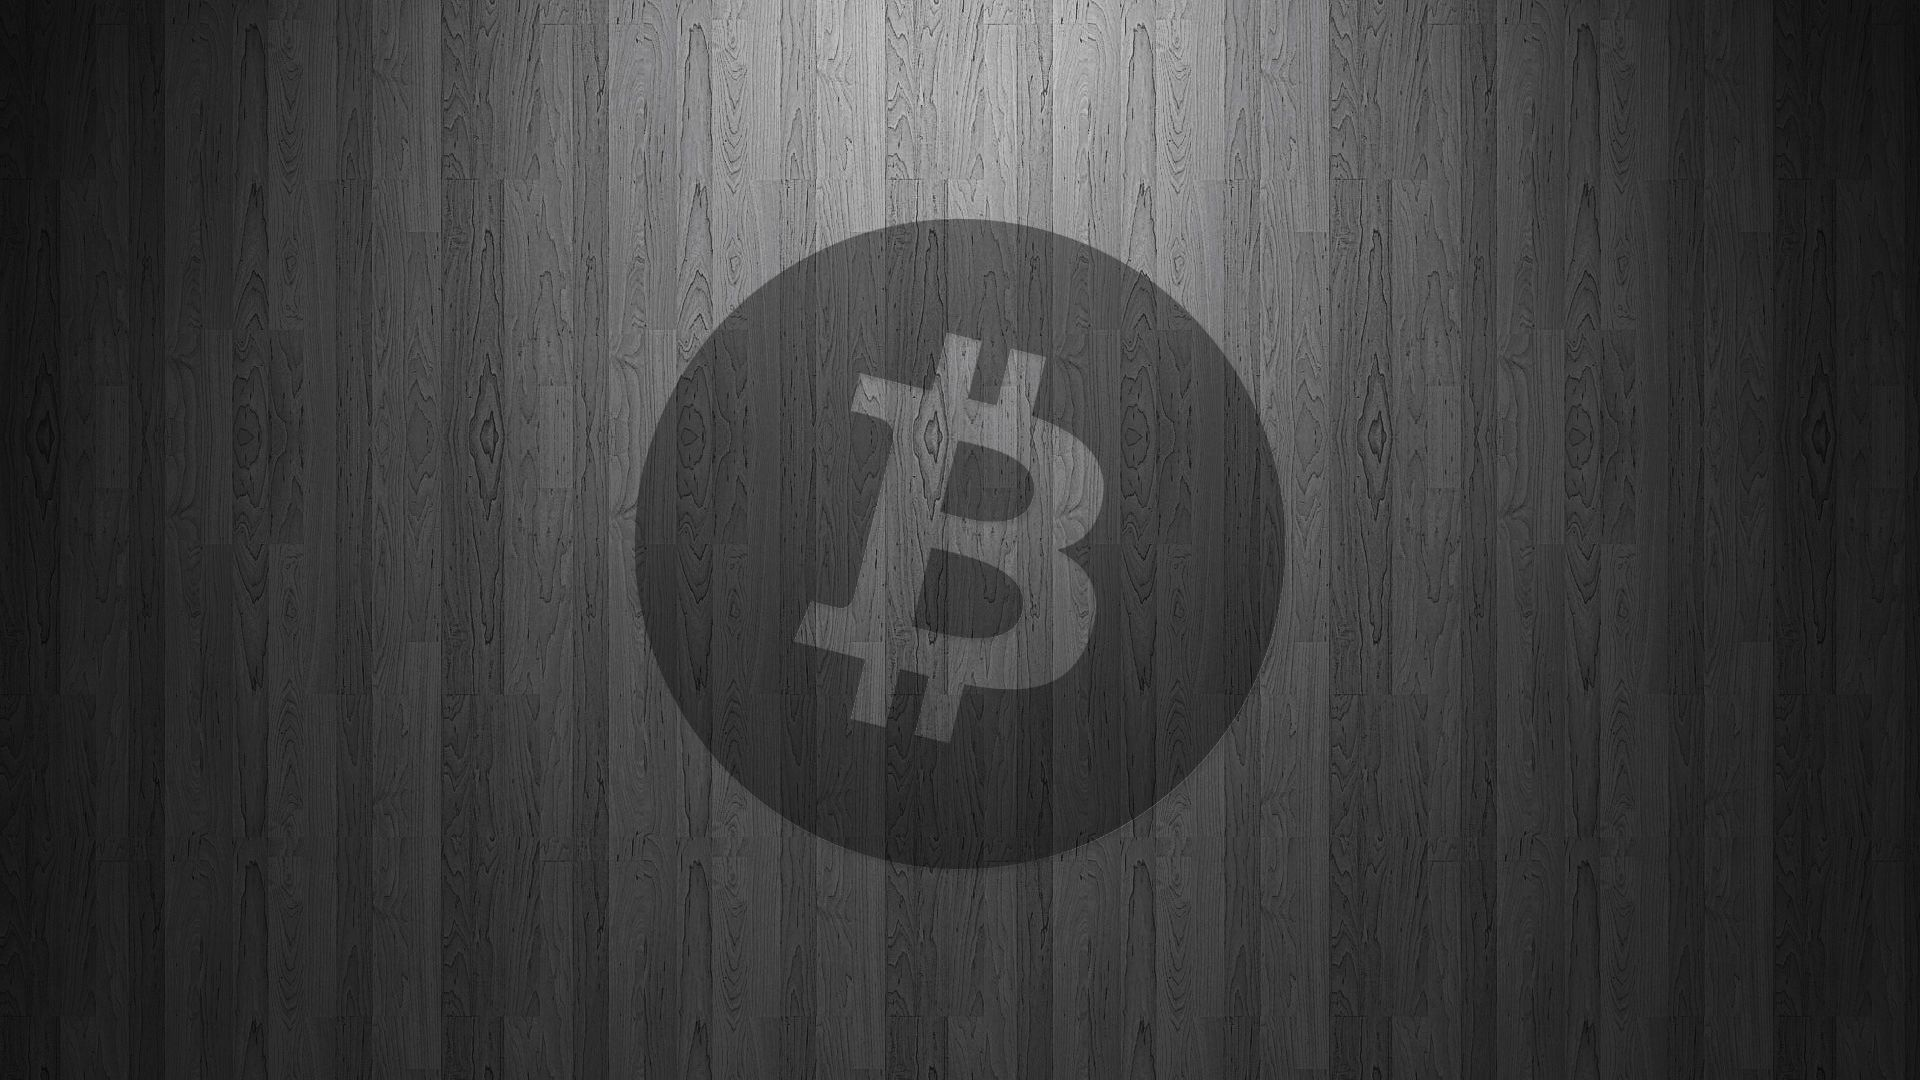 How Much Is the Bitcoin Worth On 29th June